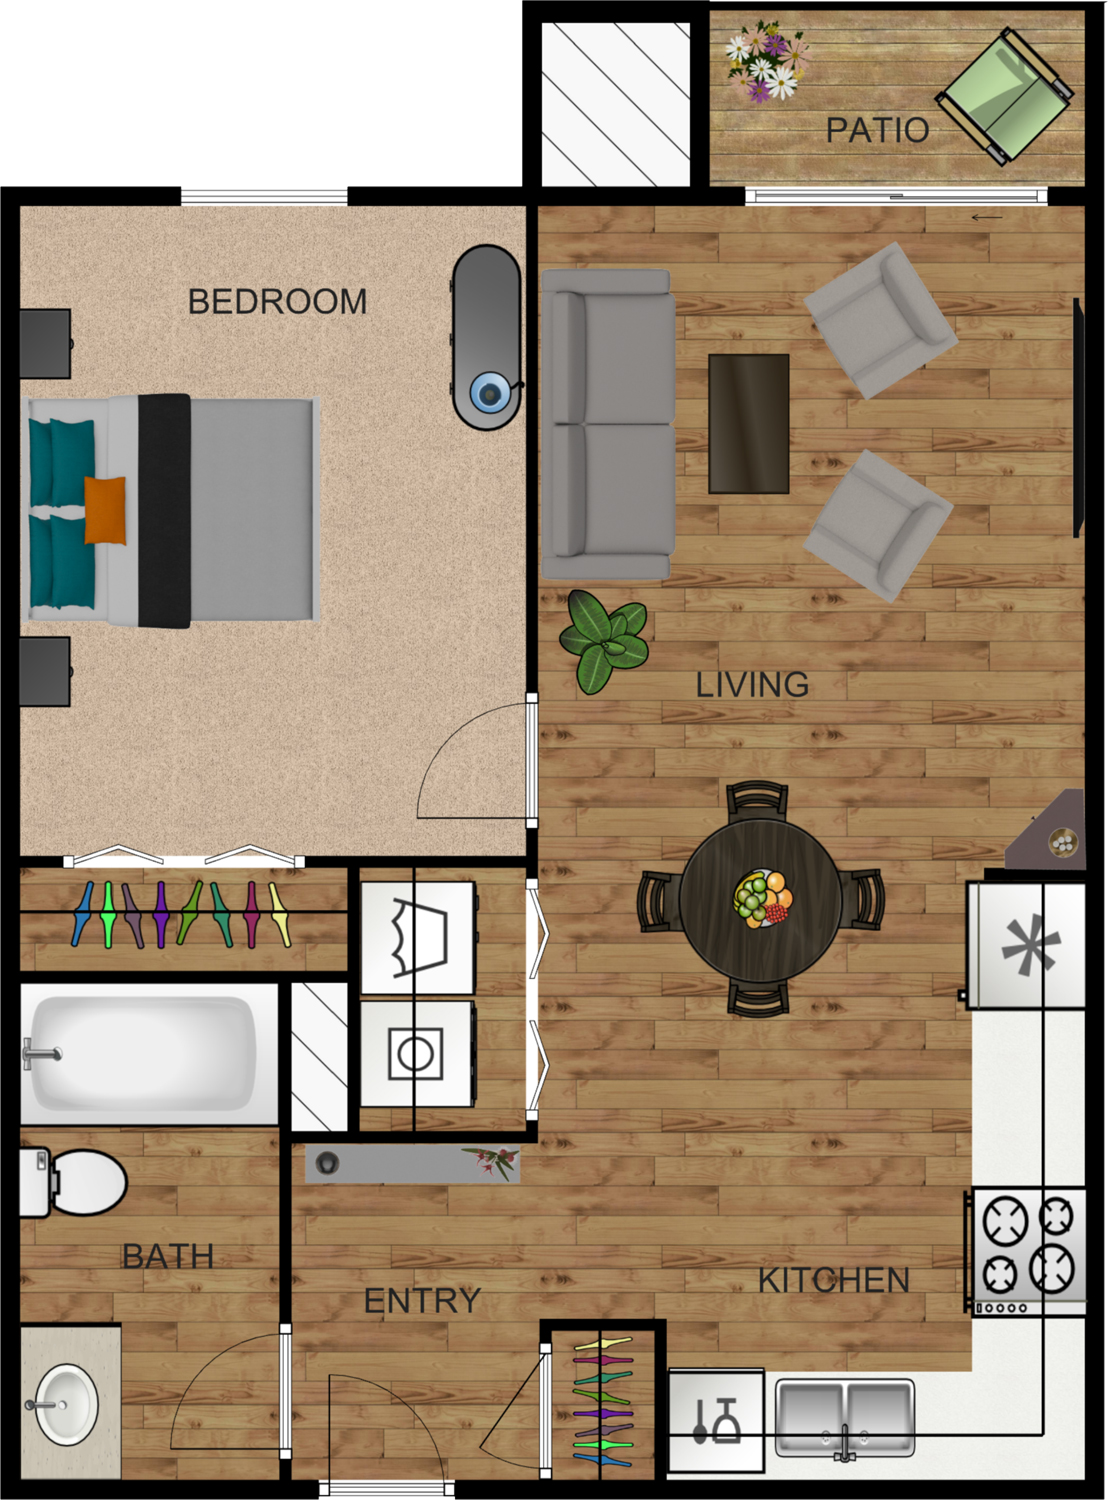 1 Bed 1 Bath (Chestnut)